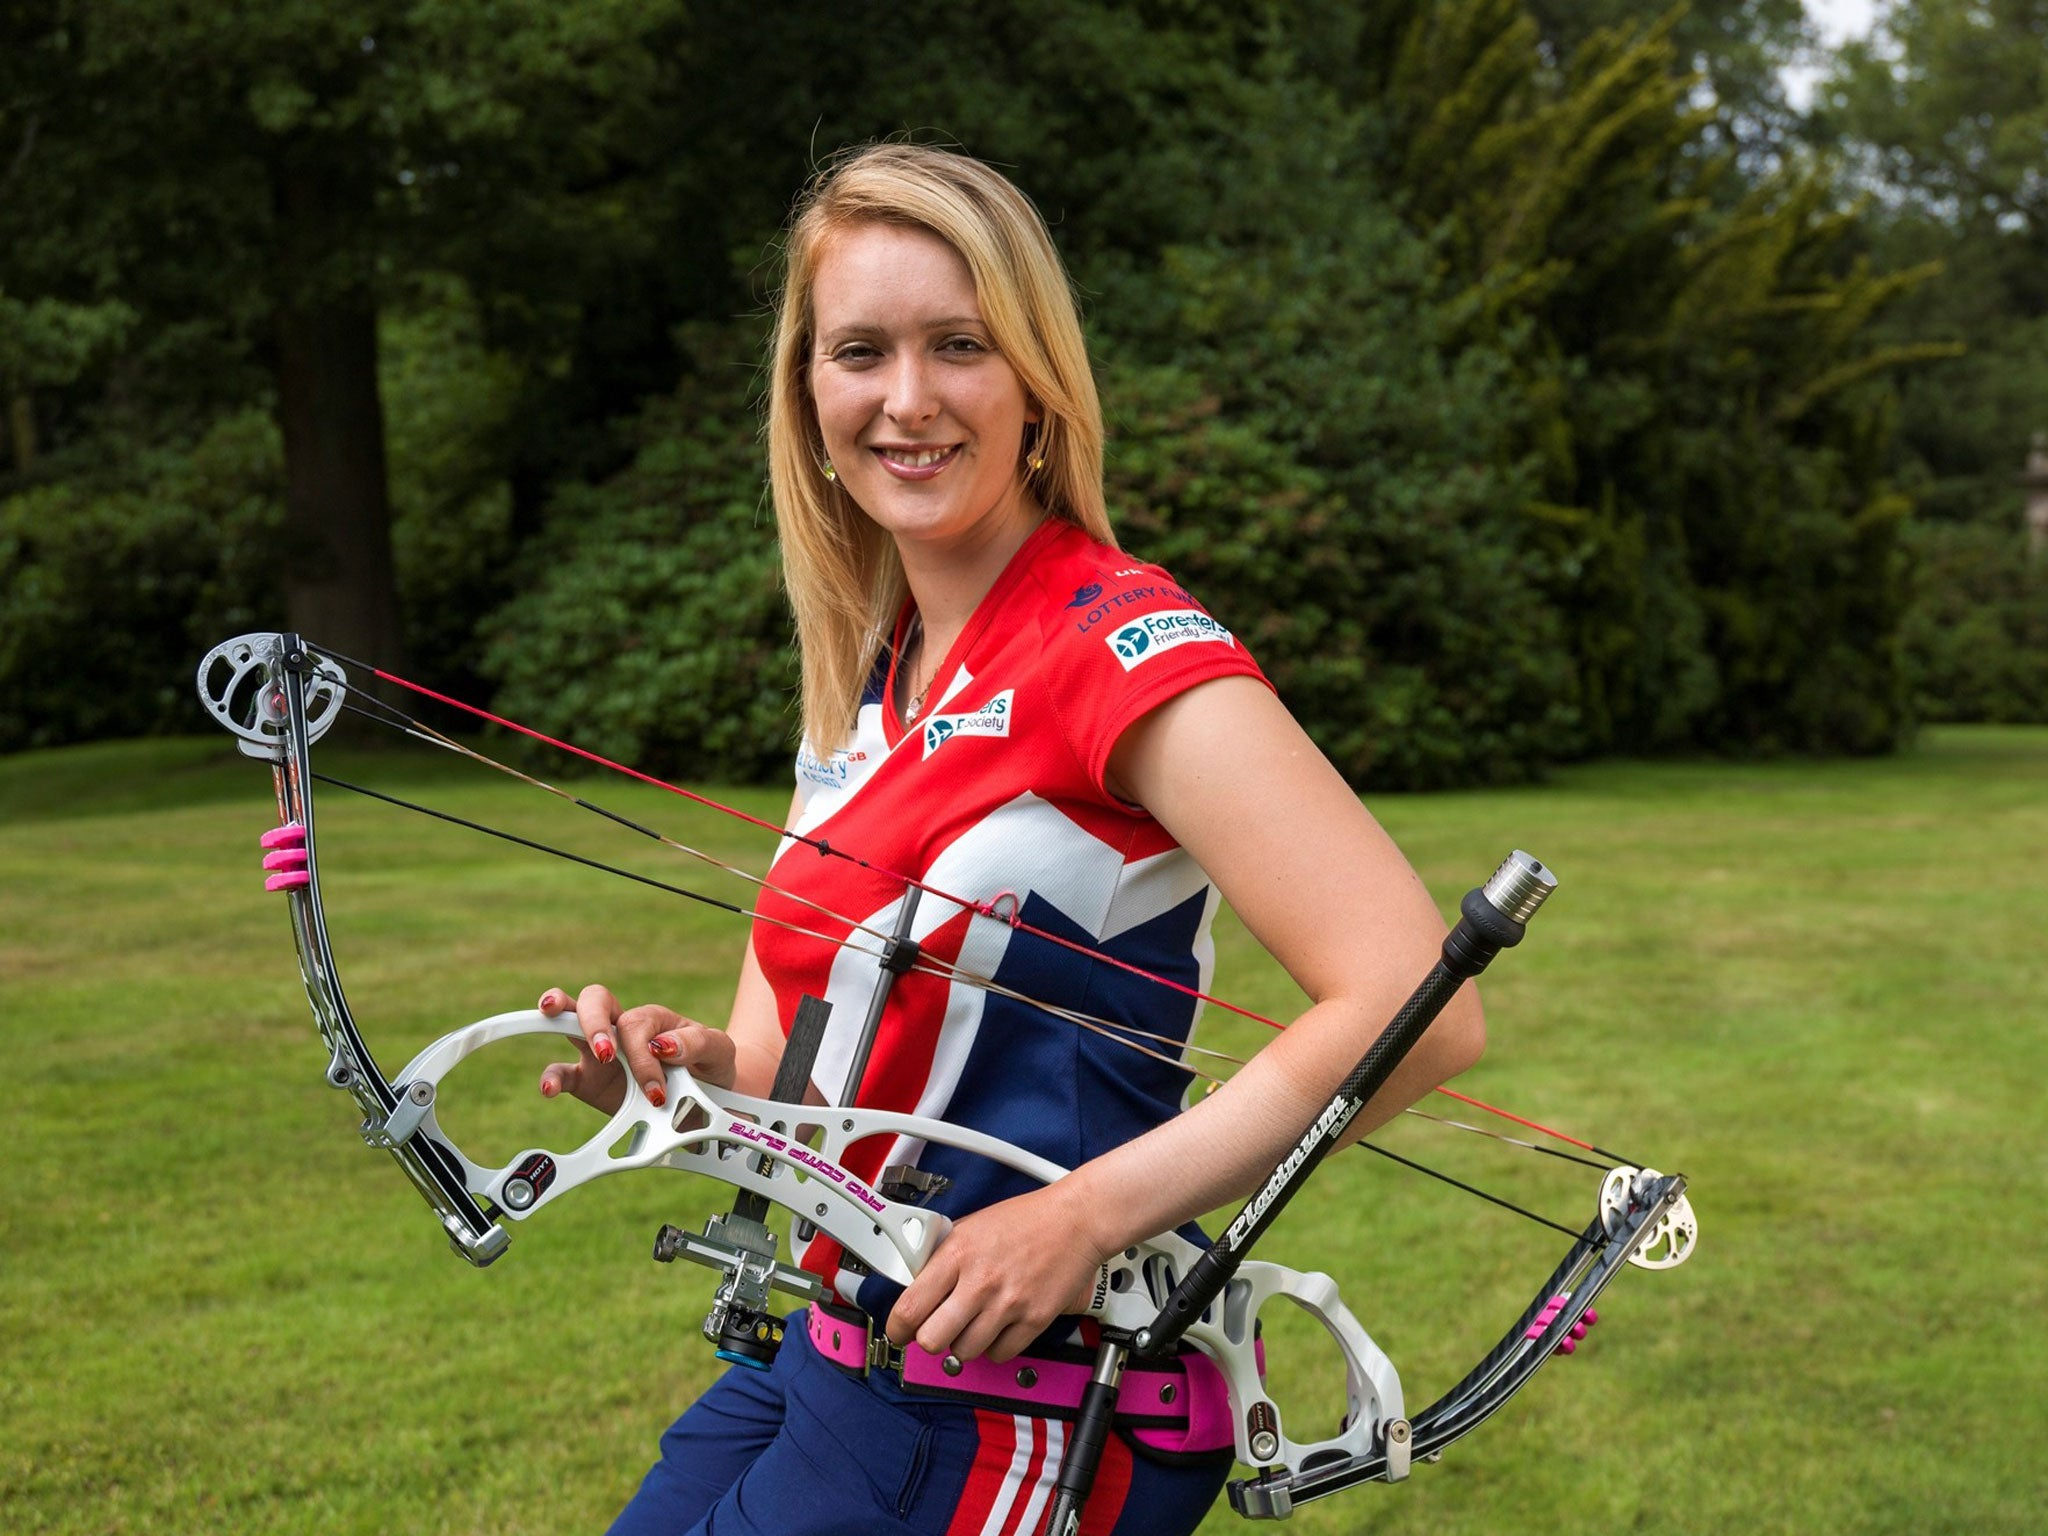 Archery: Danielle Brown Gains National Title In Able